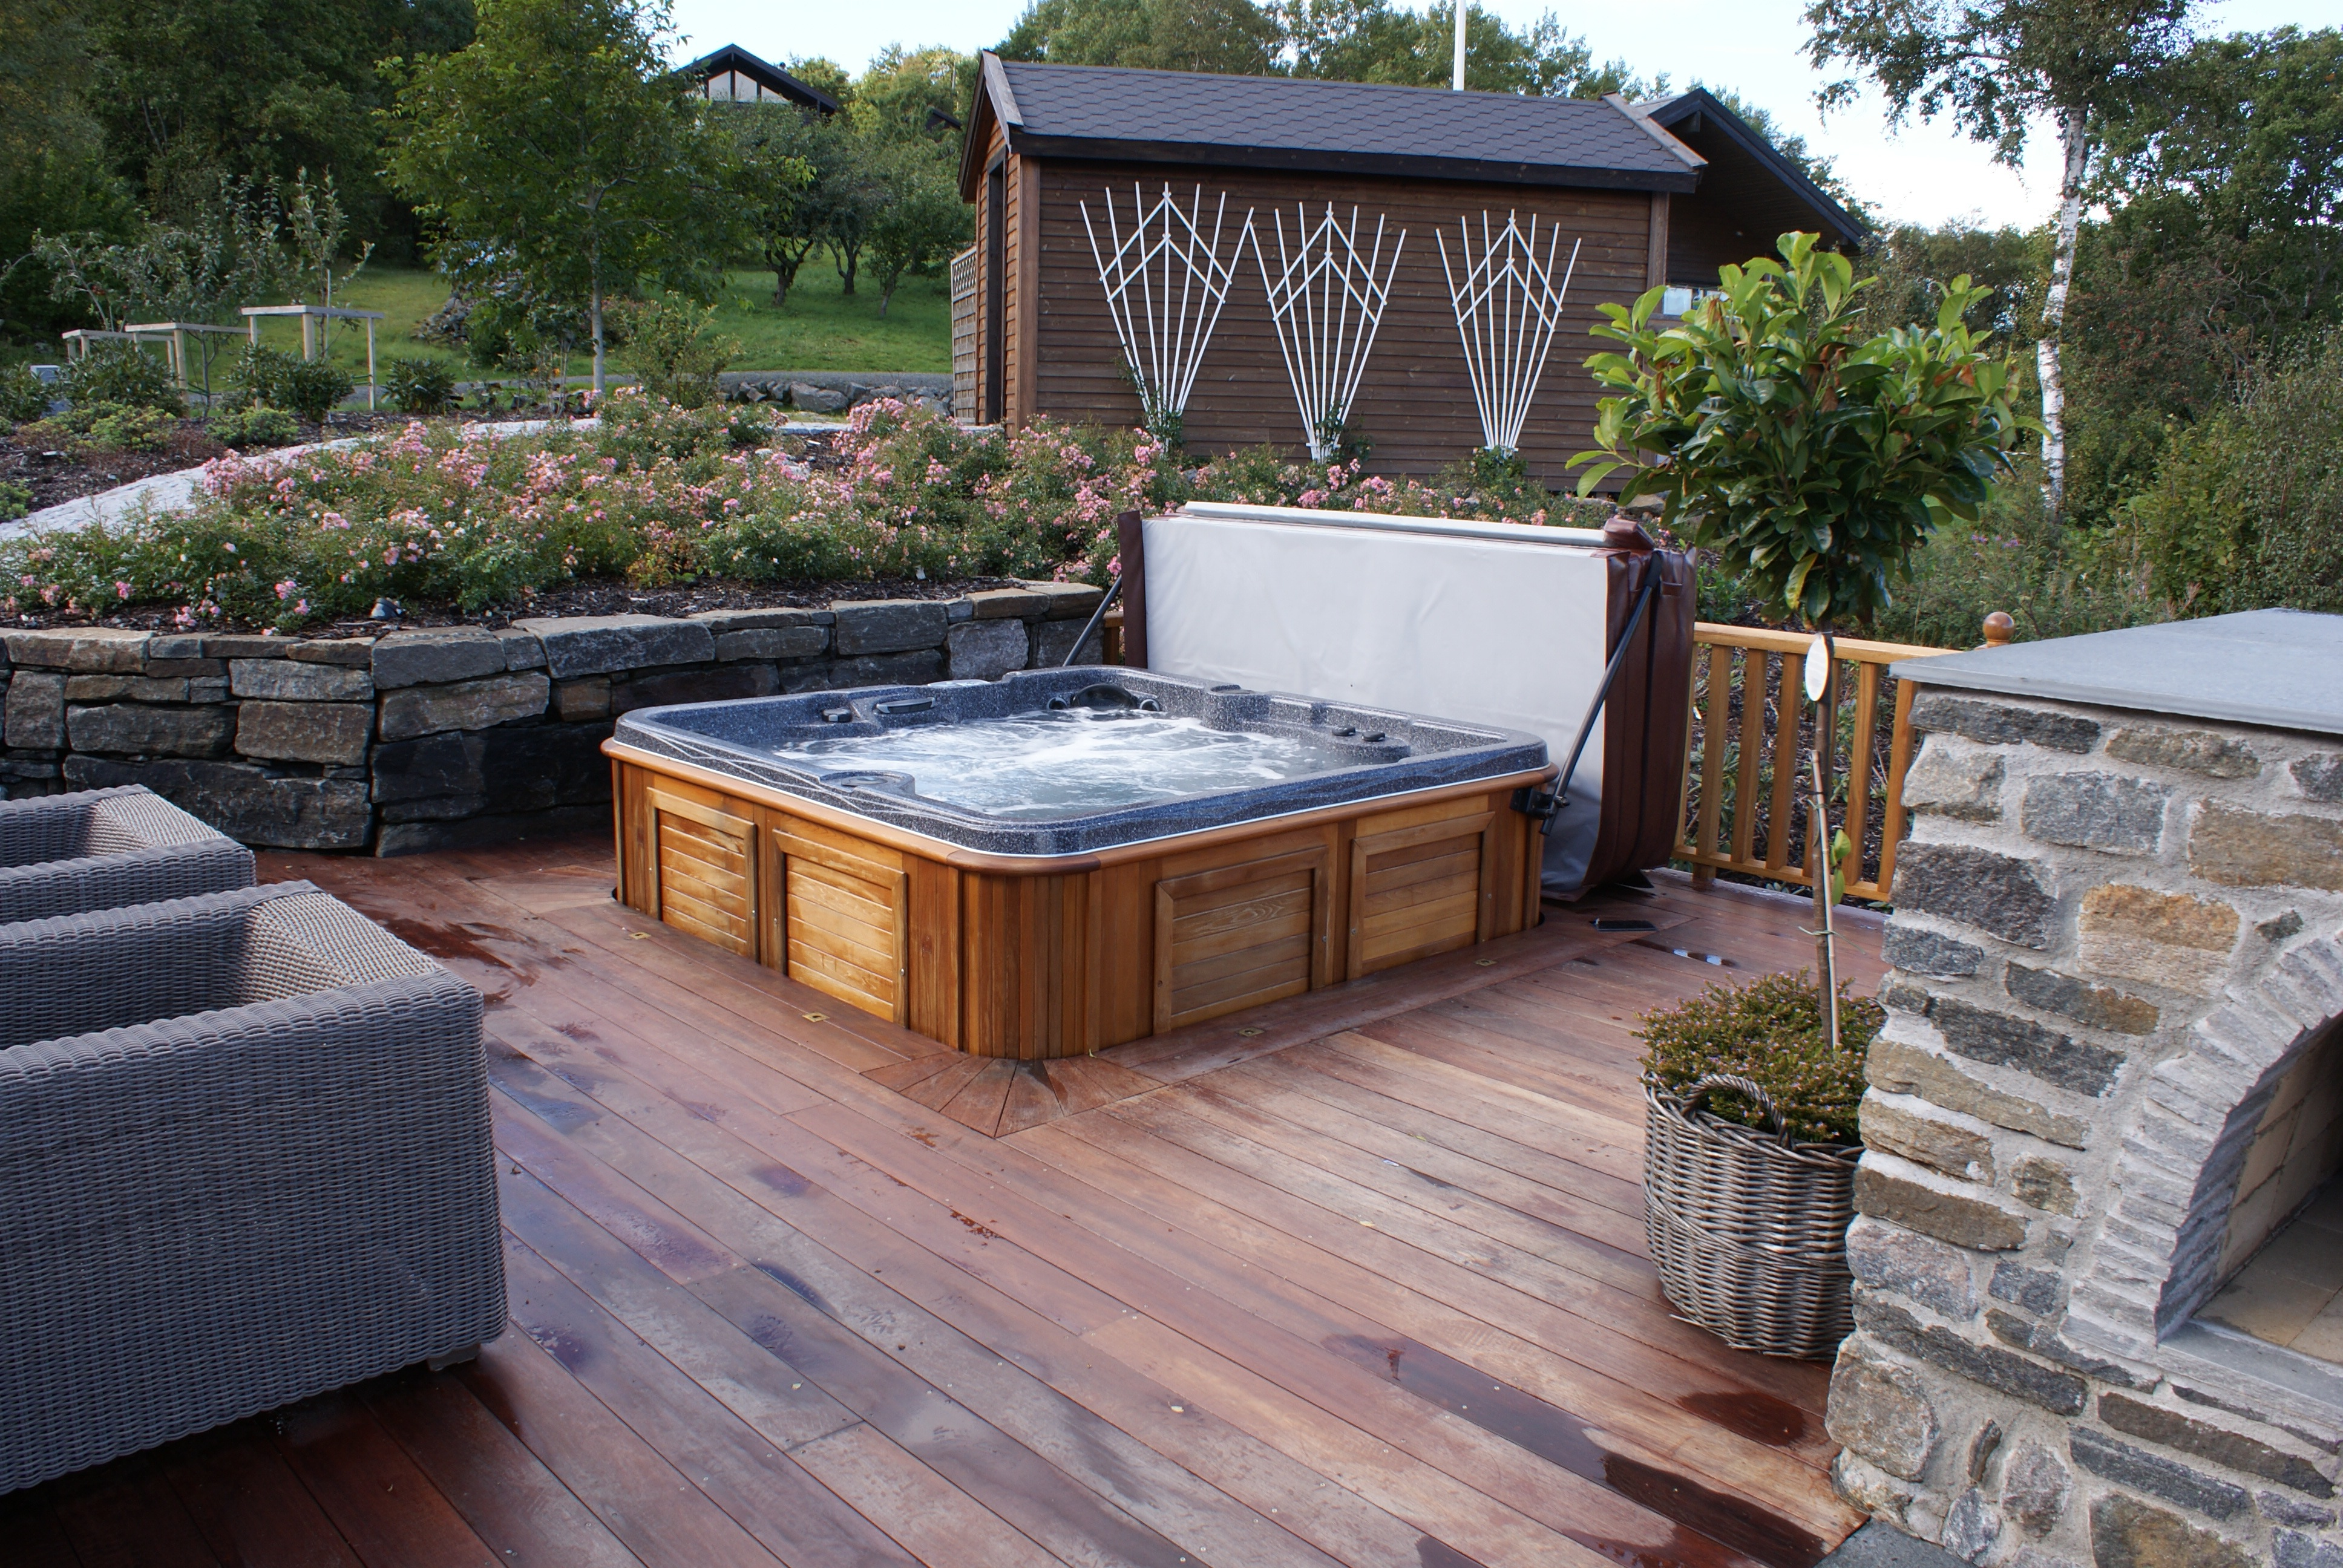 11 Awesome Outdoor Hot Tubs Ideas For Your Relaxation ...